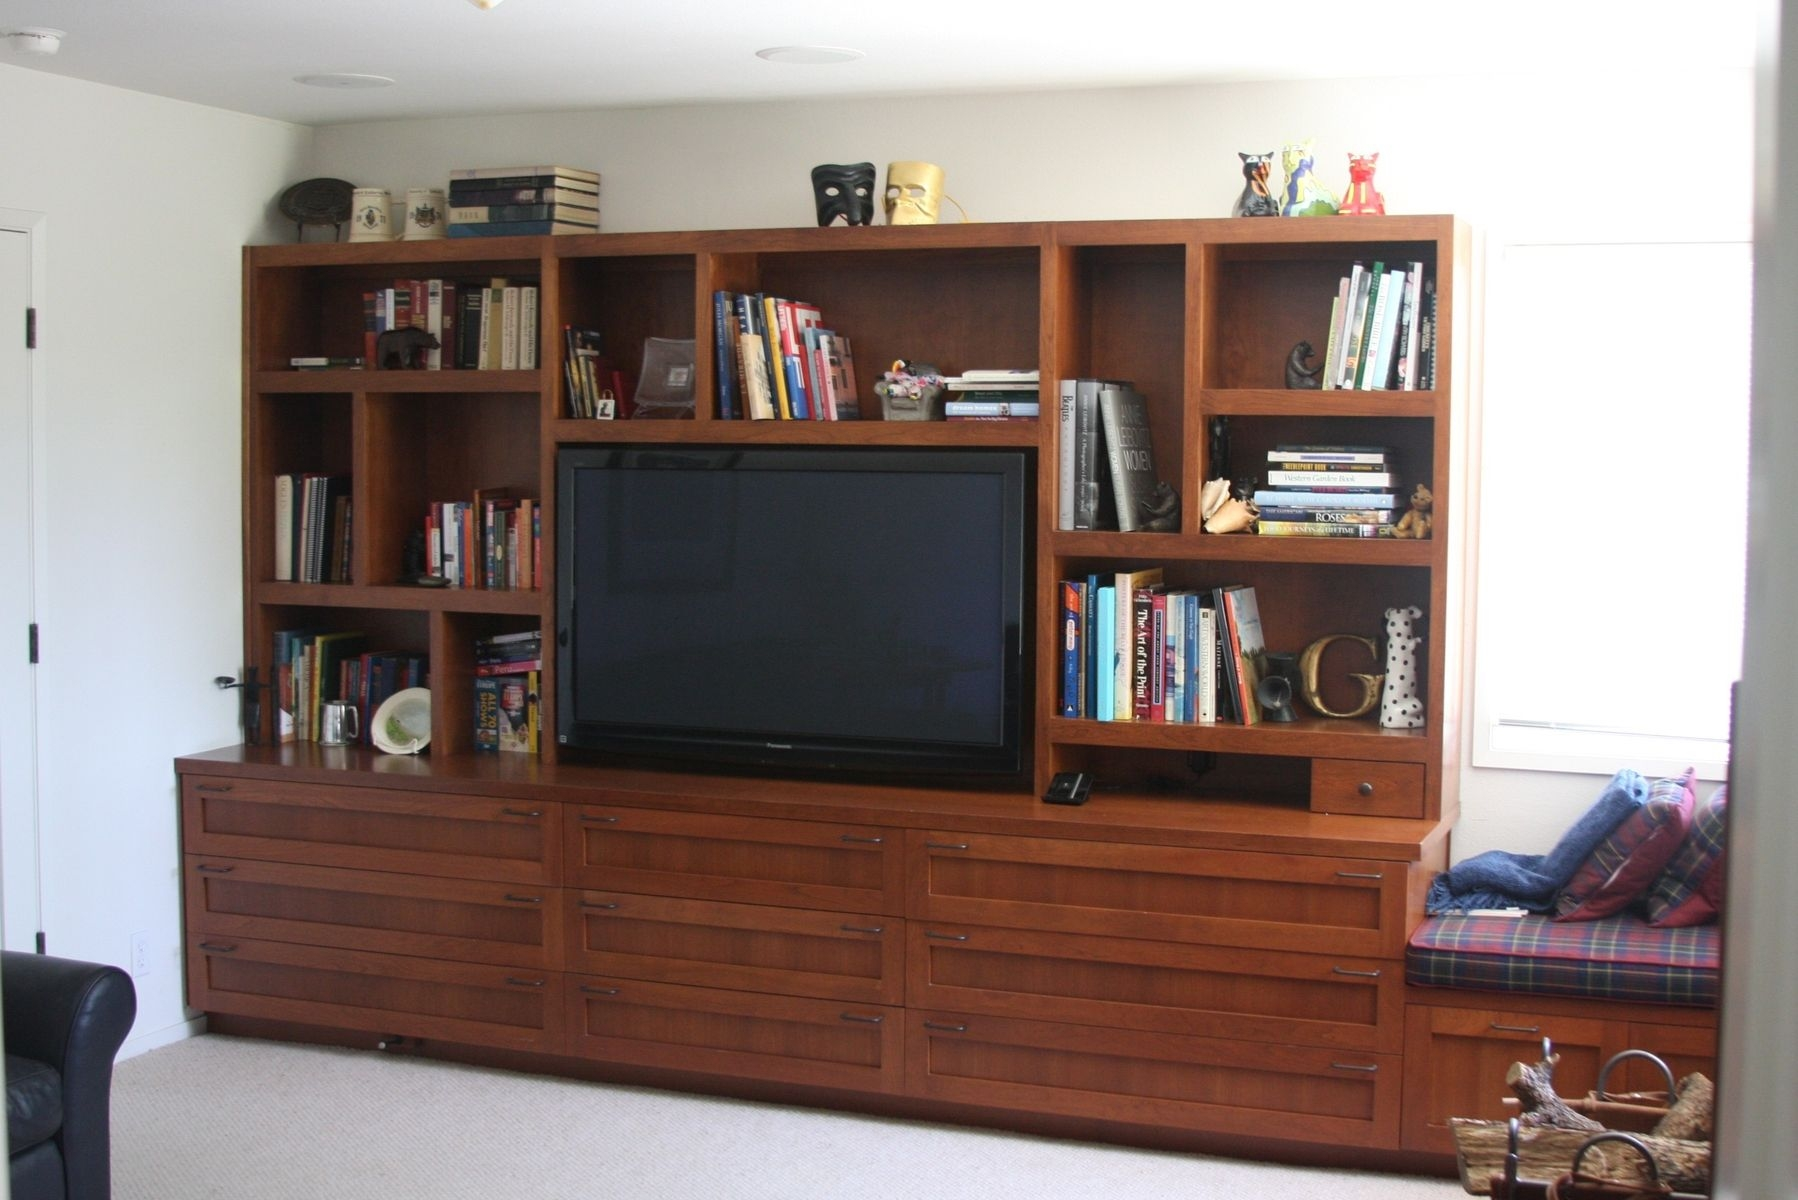 Hand Crafted Custom Cherry Bookcase With Tv Near West Inside Tv Book Case (View 6 of 14)